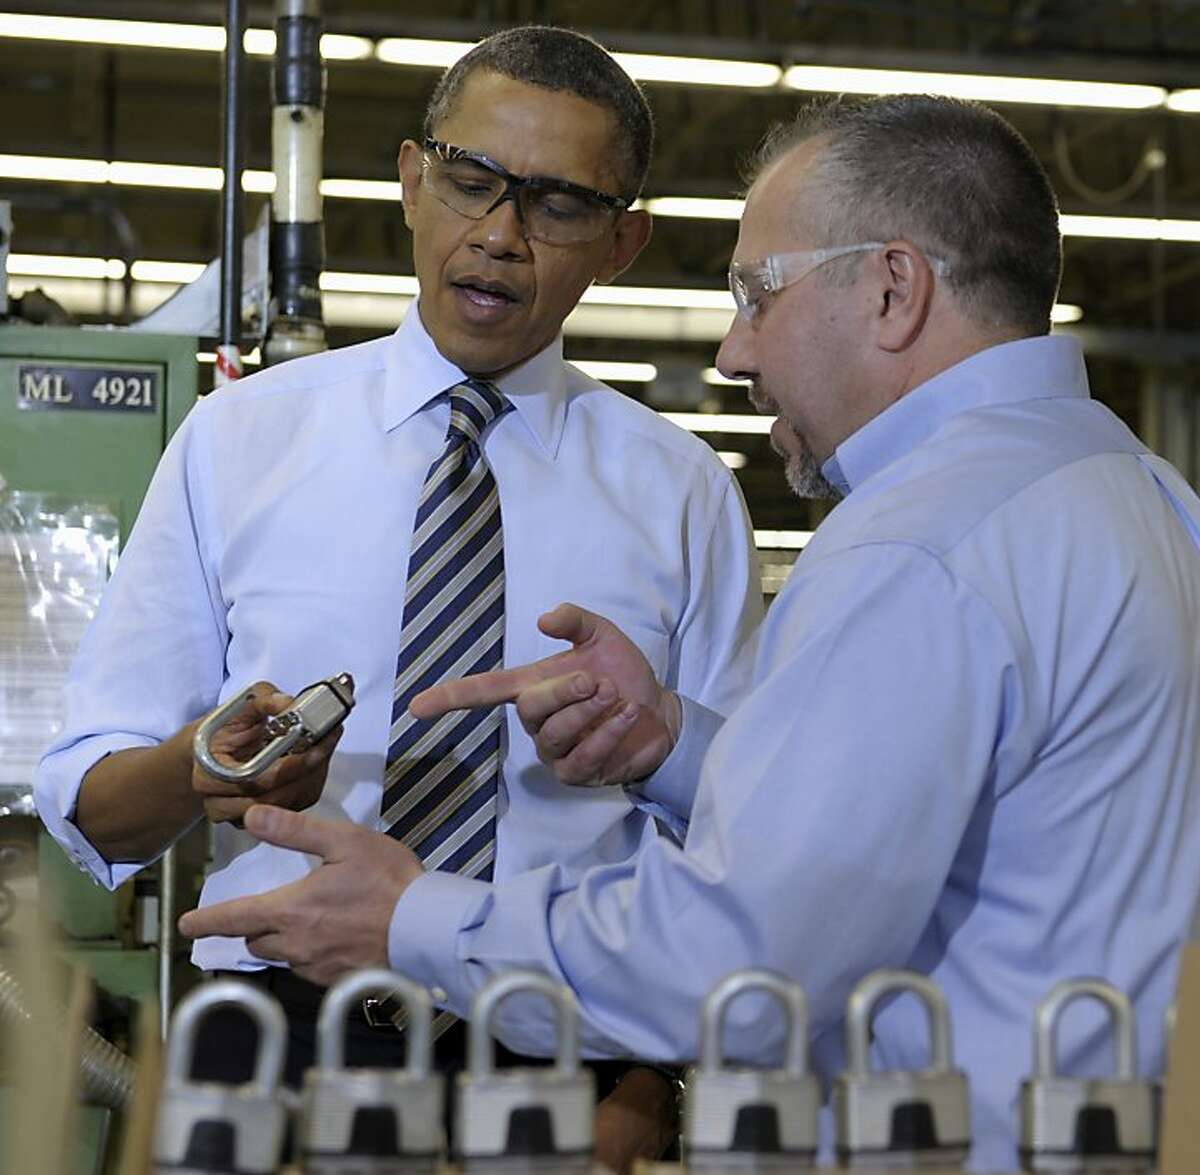 President Barack Obama holds a lock as he tours Master Lock in Milwaukee, Wednesday, Feb. 15, 2012, with Senior Vice President Bon Rice. Obama is visiting the Master Lock manufacturing operation before heading on a three-day trip to the West Coast. (AP Photo/Susan Walsh)